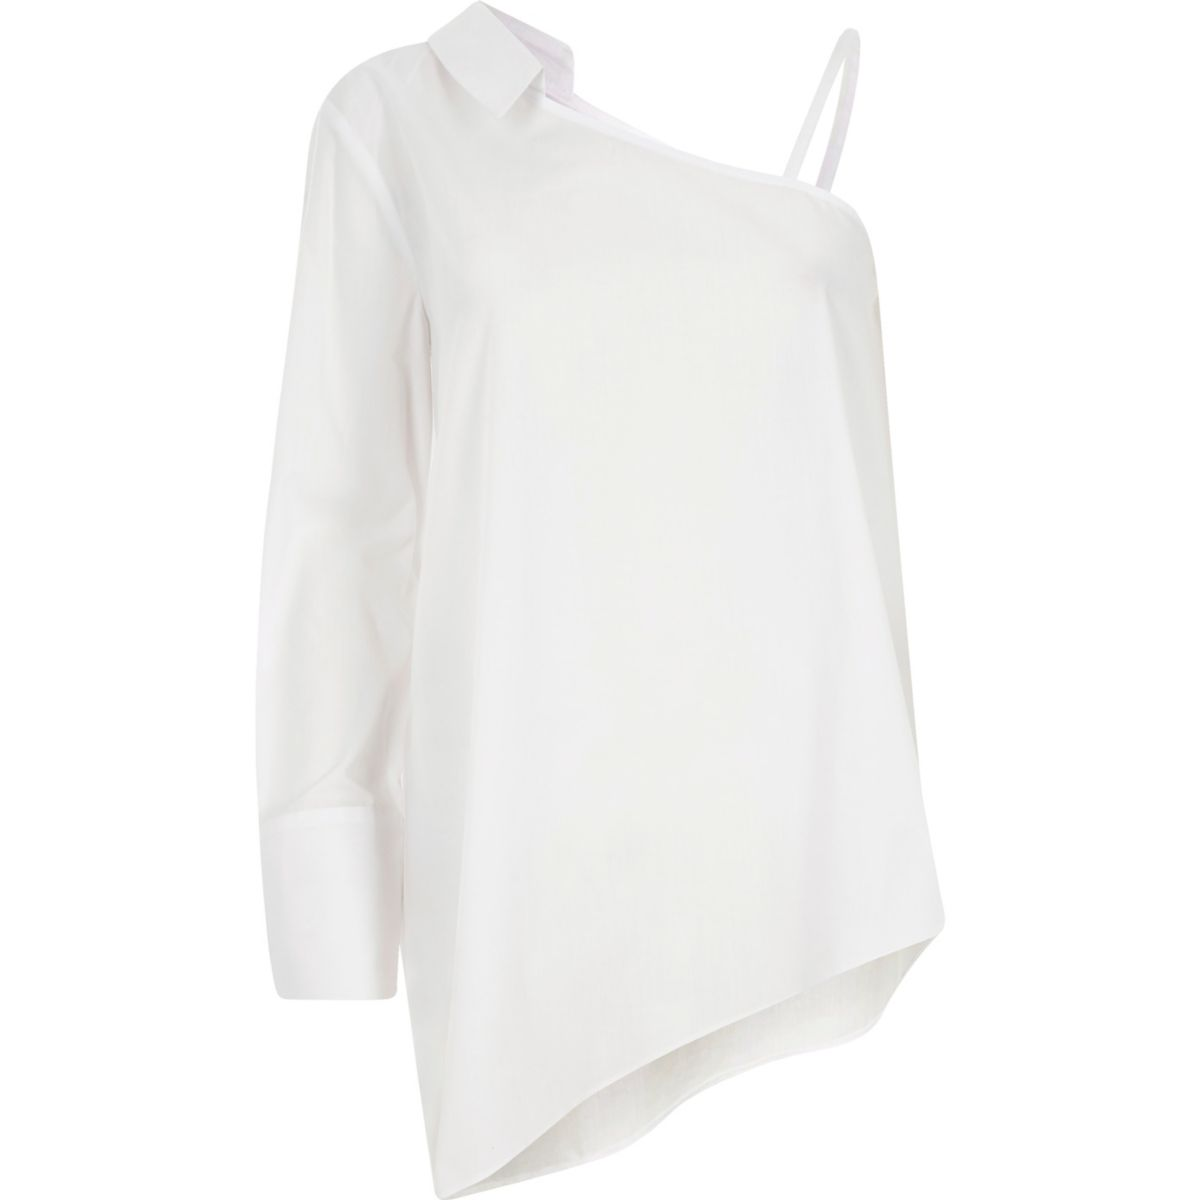 White one shoulder long sleeve shirt